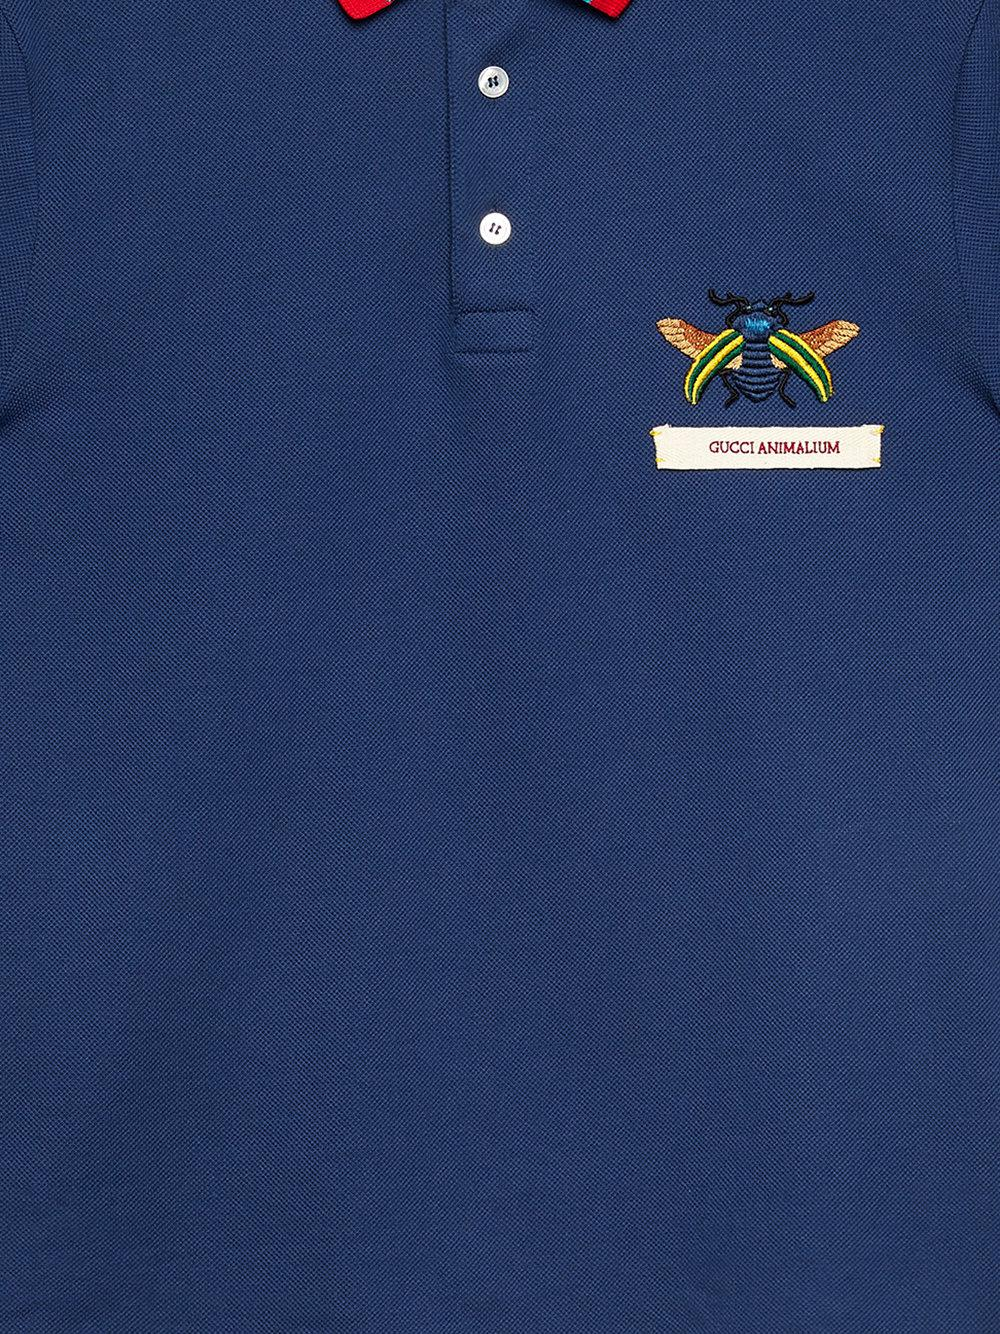 f06278c9a06 Lyst - Gucci Animalium Cotton Polo Shirt in Blue for Men